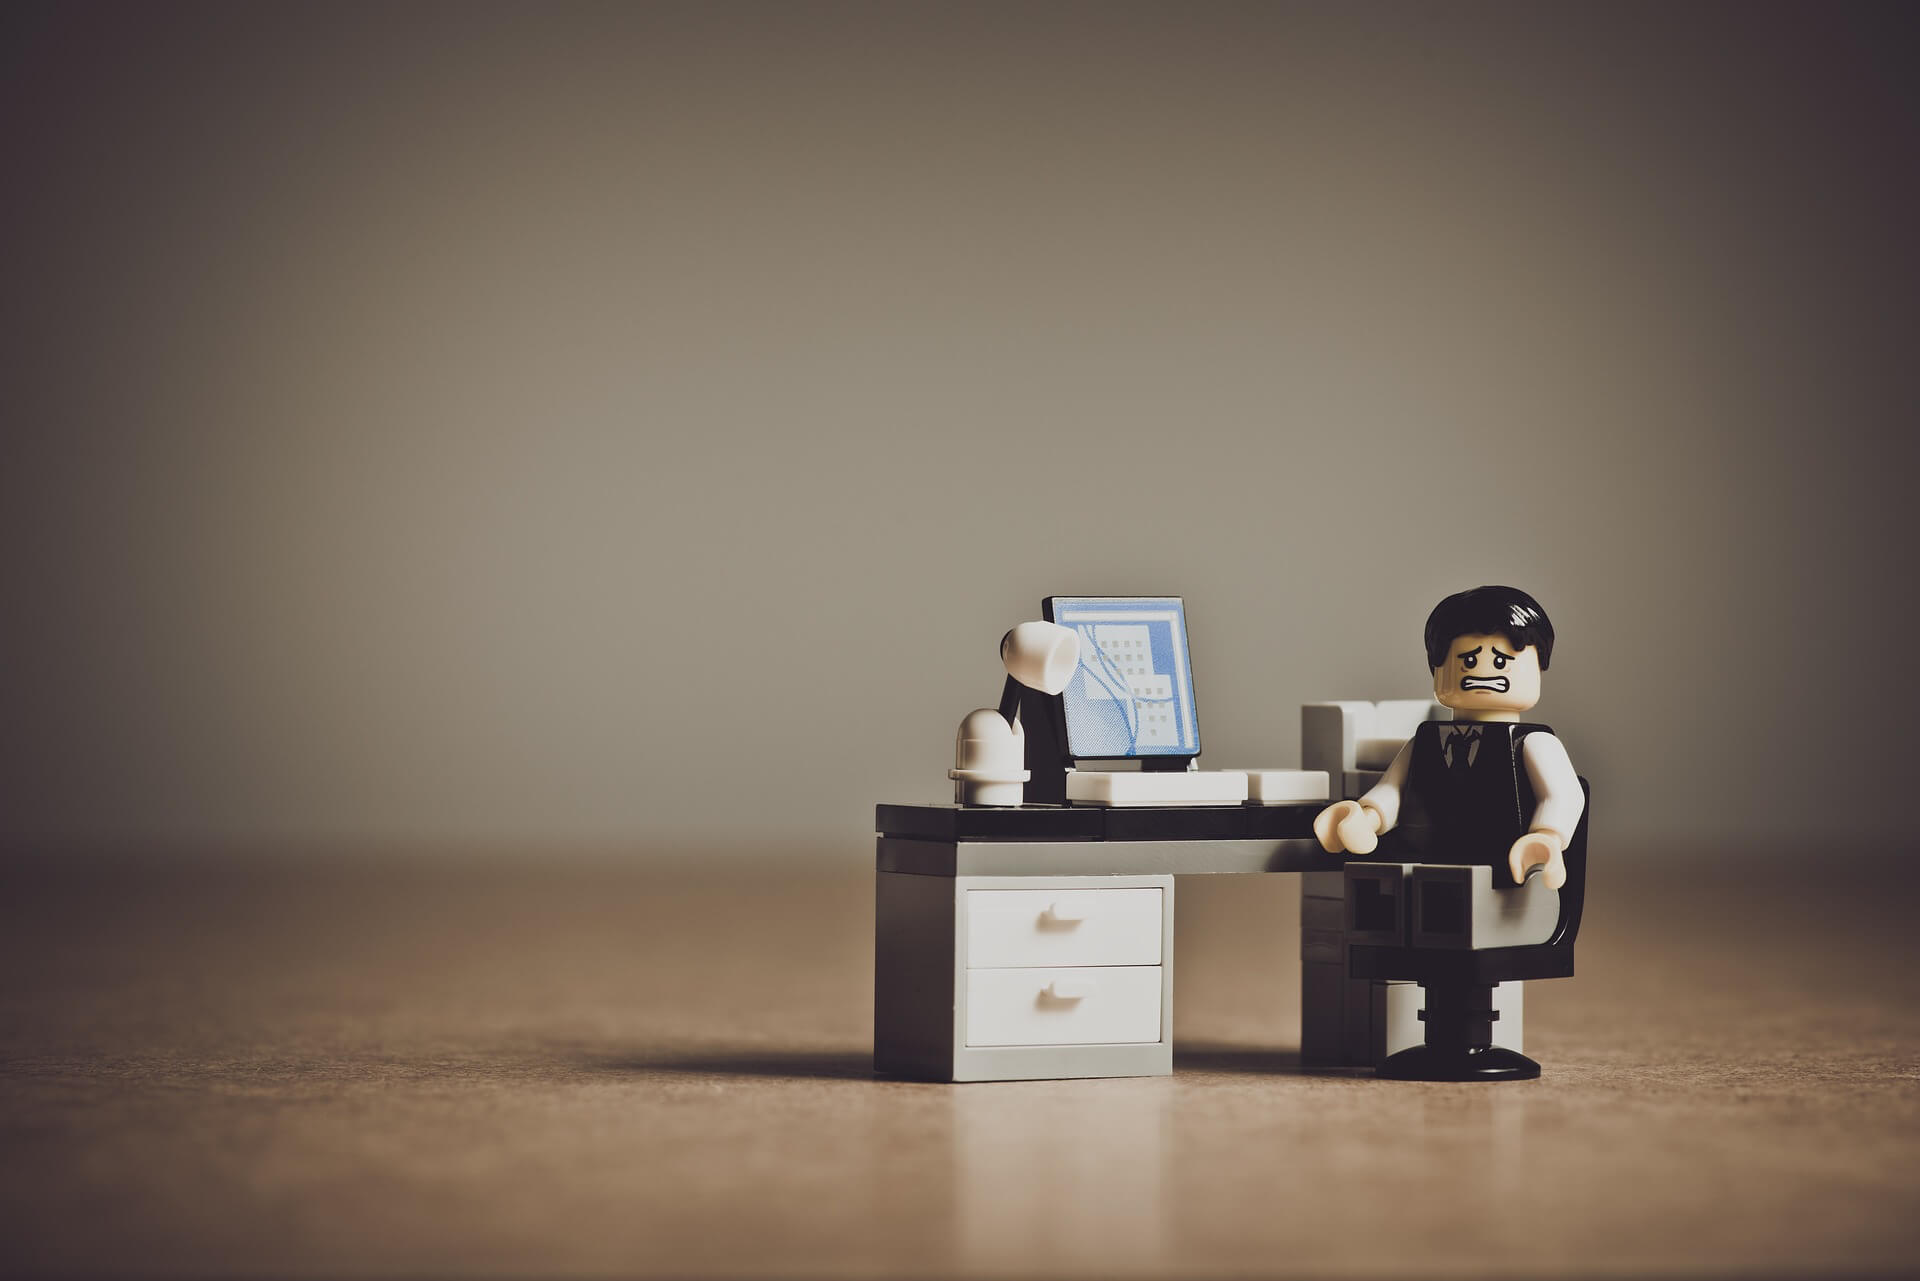 worried employer lego man about responsibilities